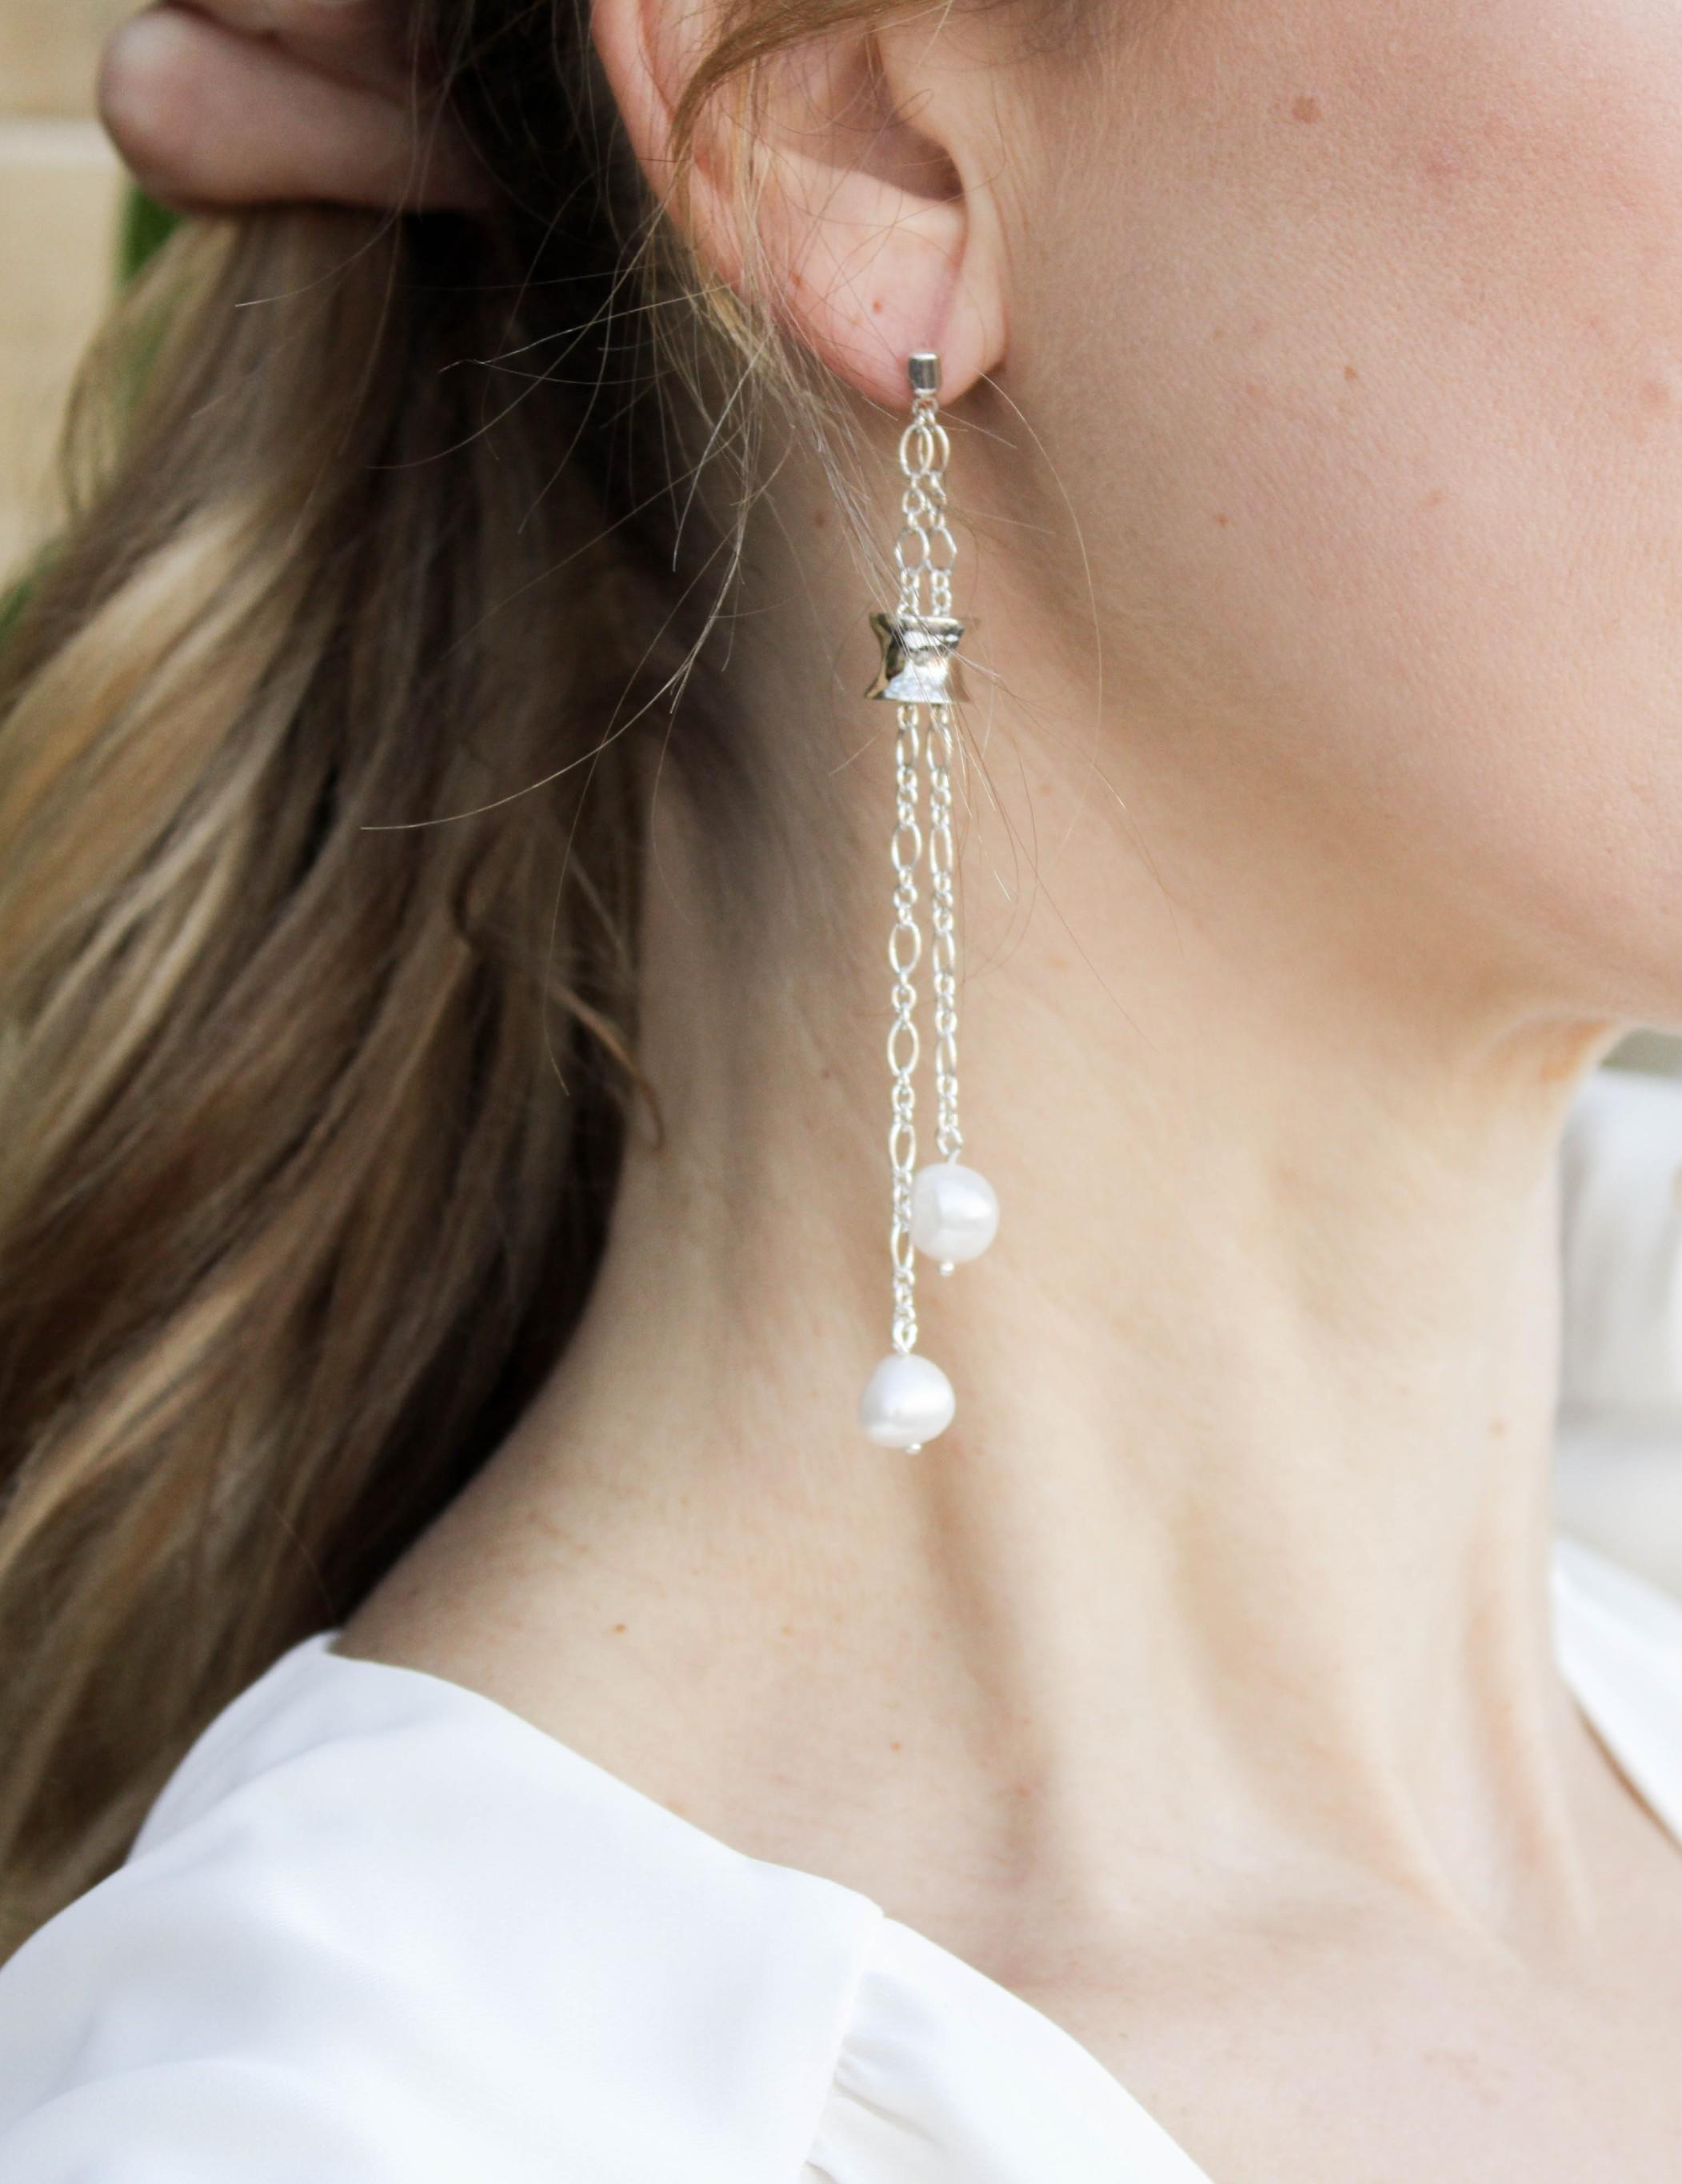 Baroque Pearl Earrings in Double Silver Chain and Handmade Solid Silver Bead with Diamond